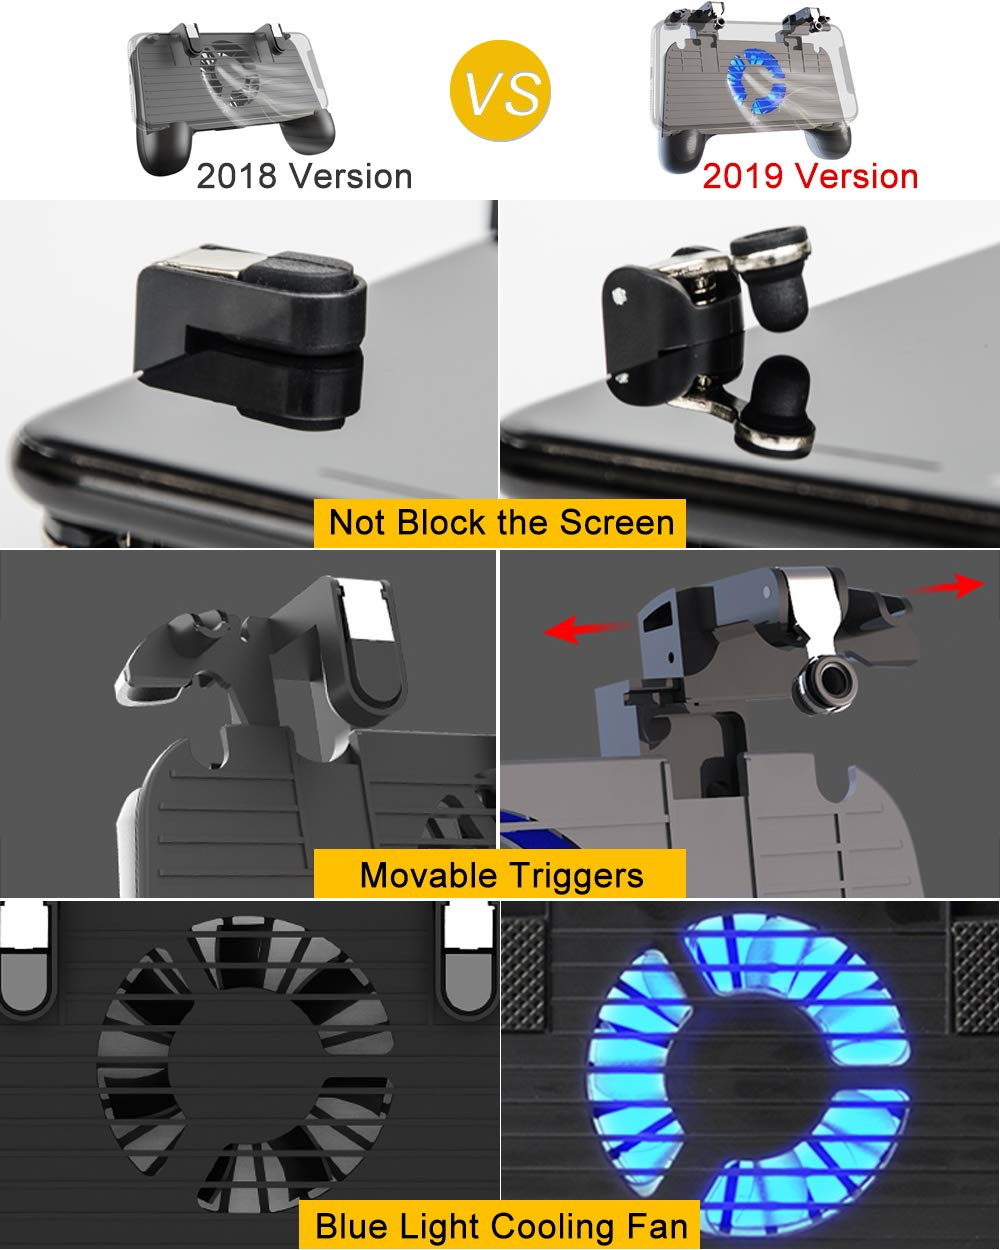 Mobile Controller with Power Bank Cooling Fan for Fortnite Mobile Controller L1R1 Game Trigger Joystick Gamepad Grip Remote for 4-6.5'' Android IOS Phone【Latest Version Blue Light 4000mAh】 by YOBWIN (Image #6)